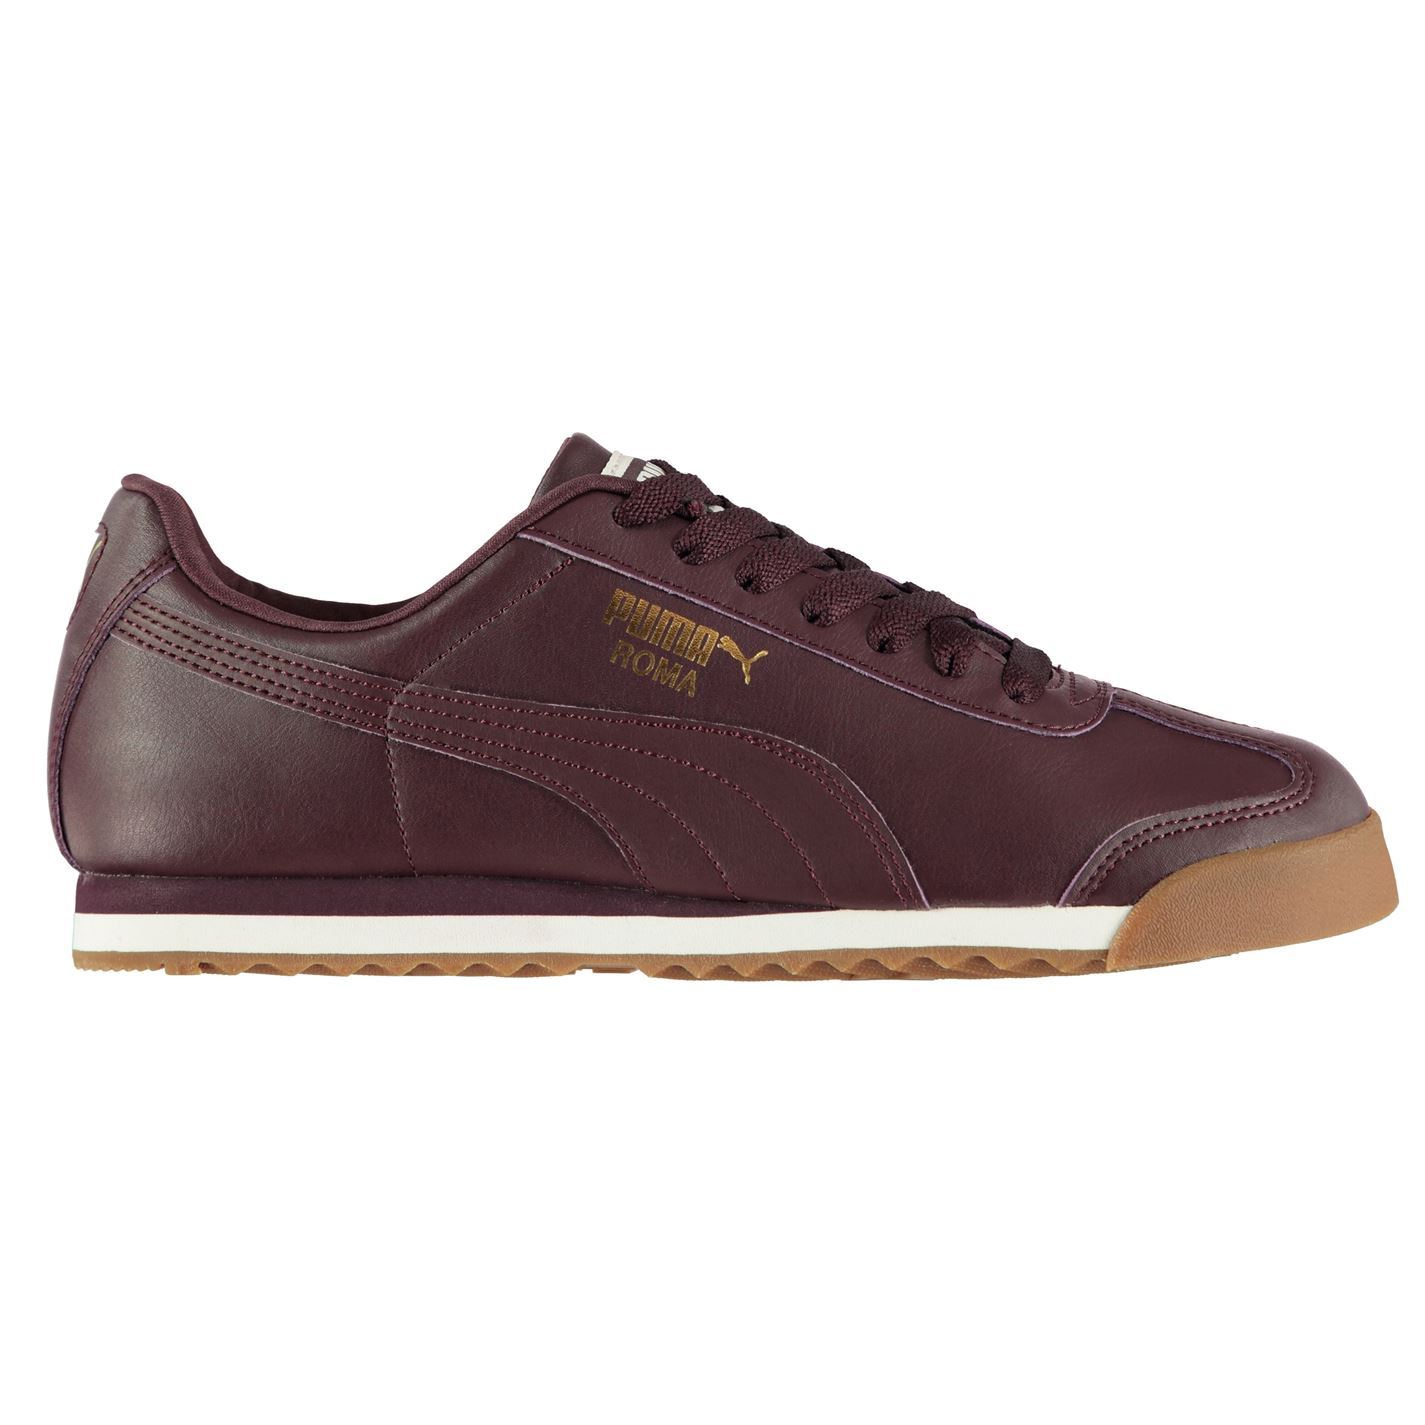 Puma-Roma-Basic-Trainers-Mens-Athleisure-Footwear-Shoes-Sneakers thumbnail 19